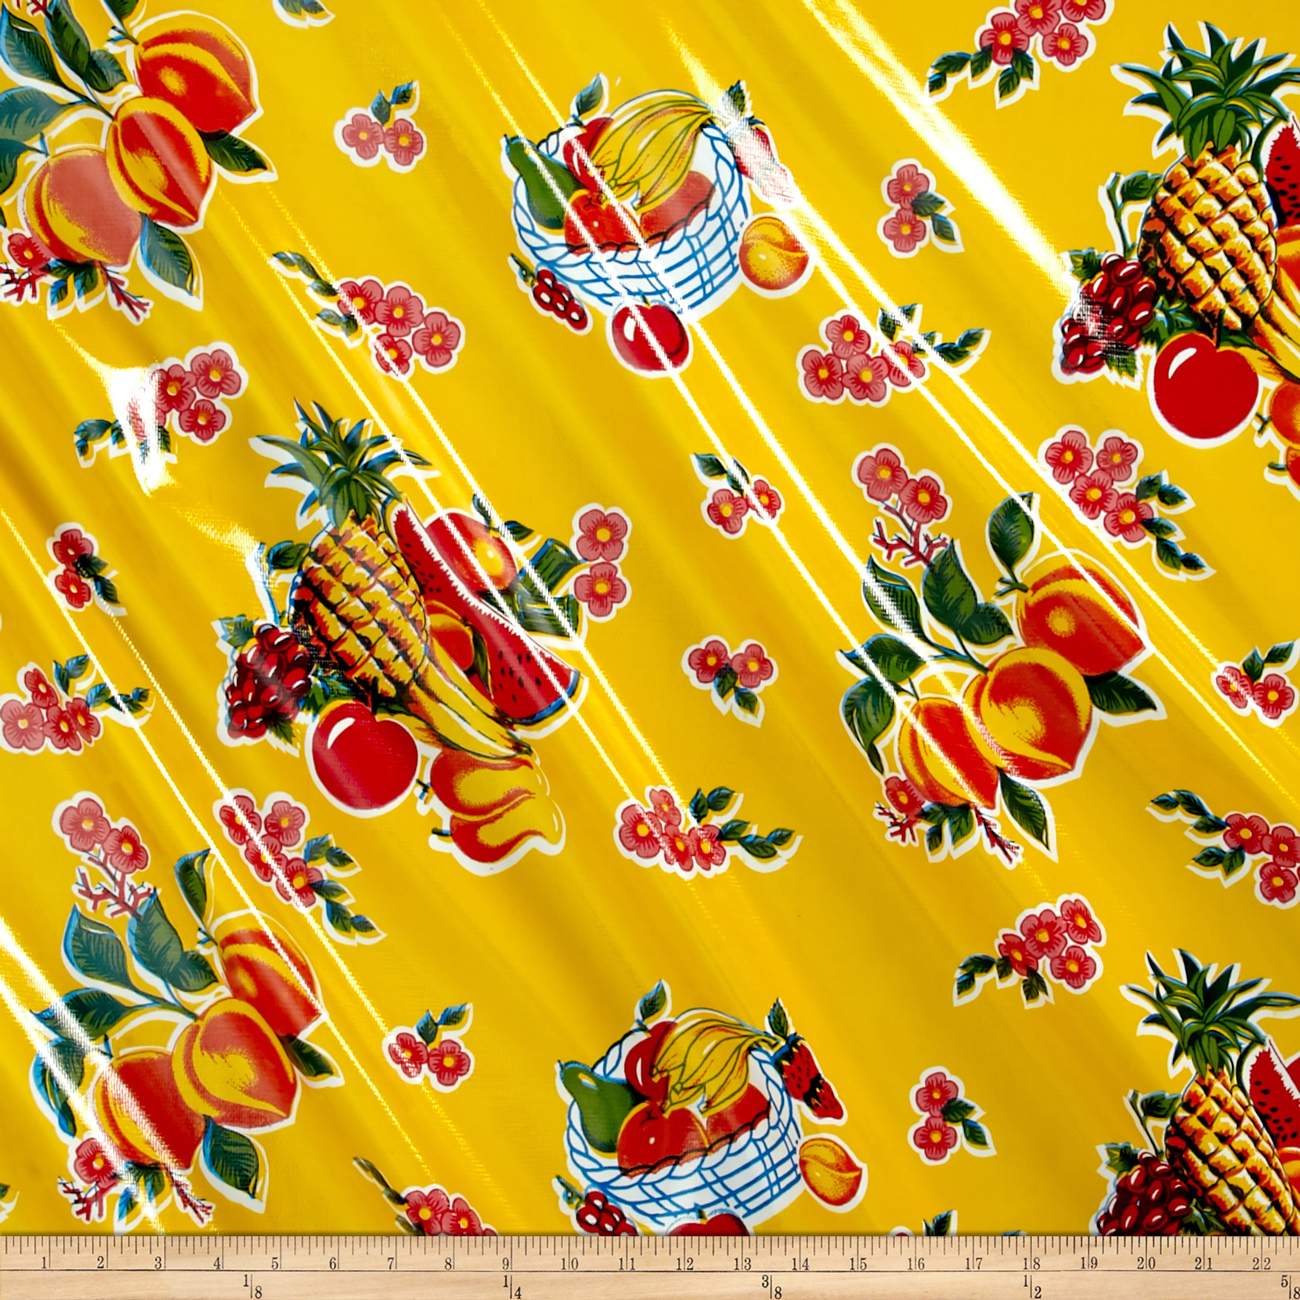 Oilcloth Cane Yellow Fabric by Oilcloth International in USA